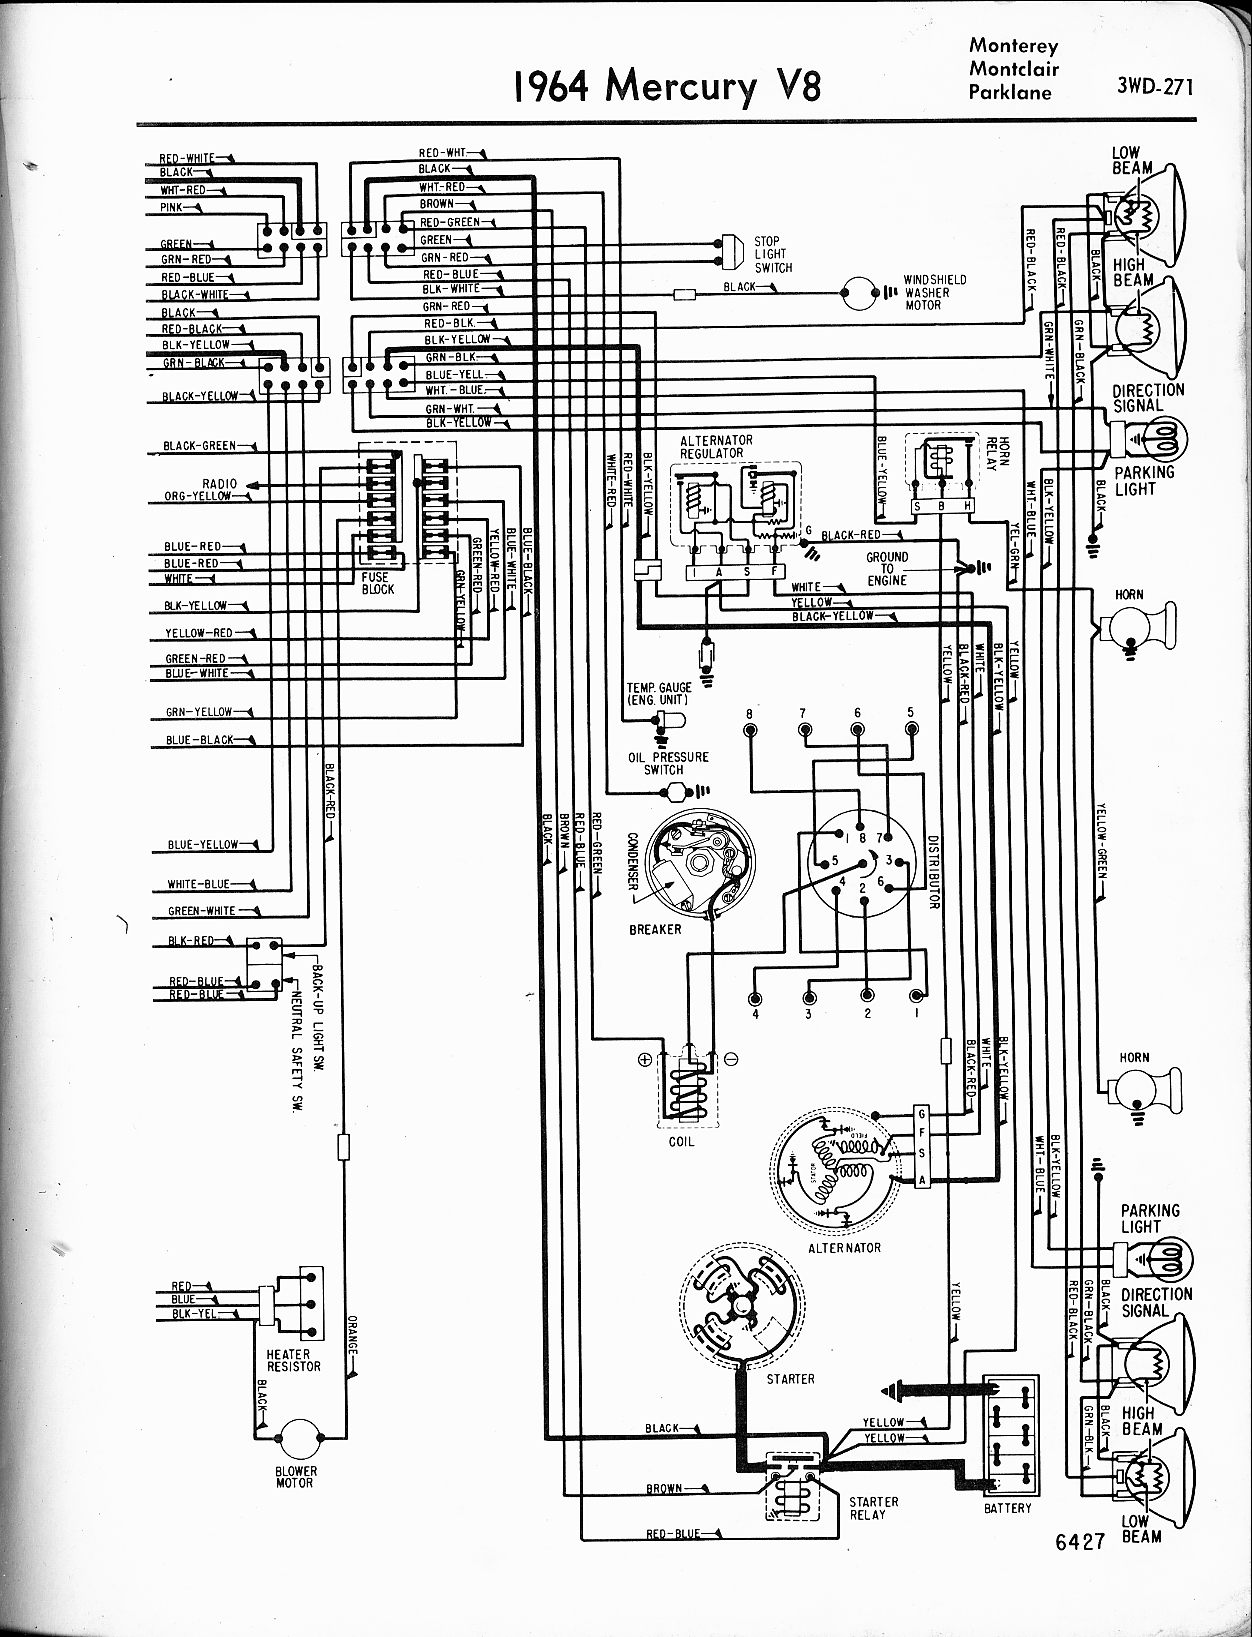 Mercury Wiring Diagrams The Old Car Manual Project 1967 Chevy C10 Fuse Box Diagram Schematic 1964 V8 Monterey Montclair Parklane Right Page